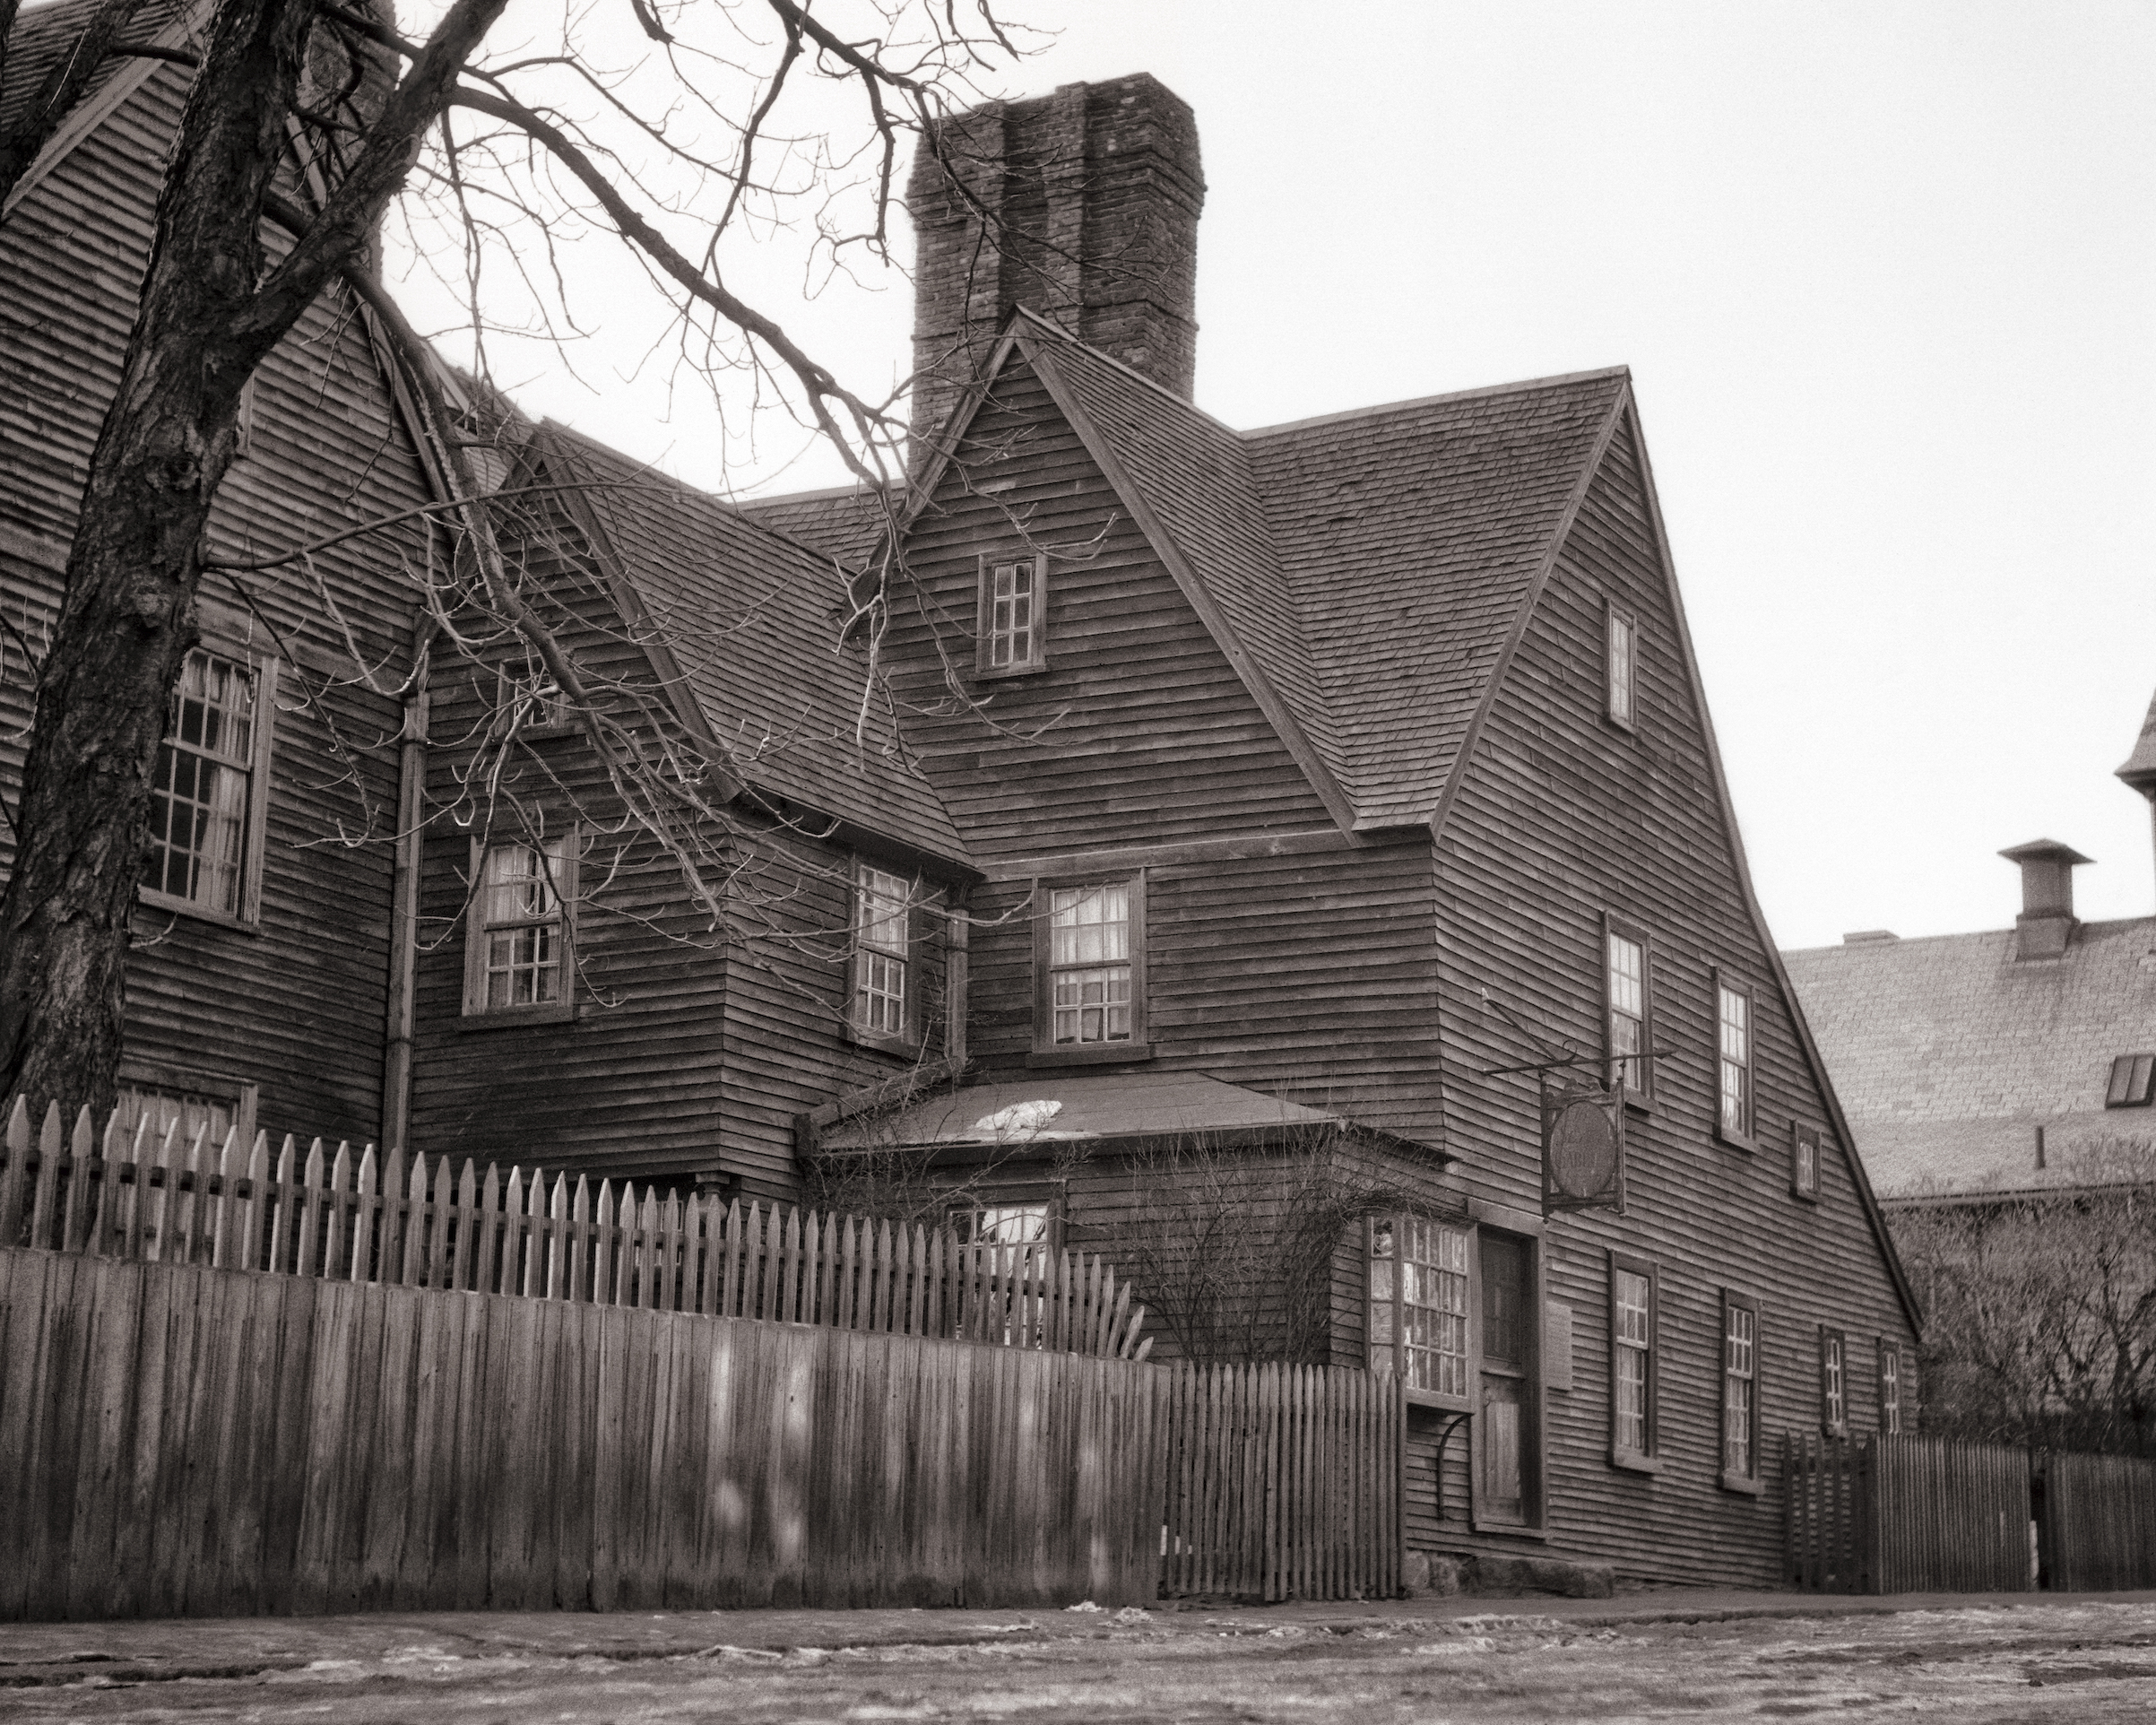 An image of The House of the Seven Gables, a 1668 home in Salem, Mass., in the 1940s